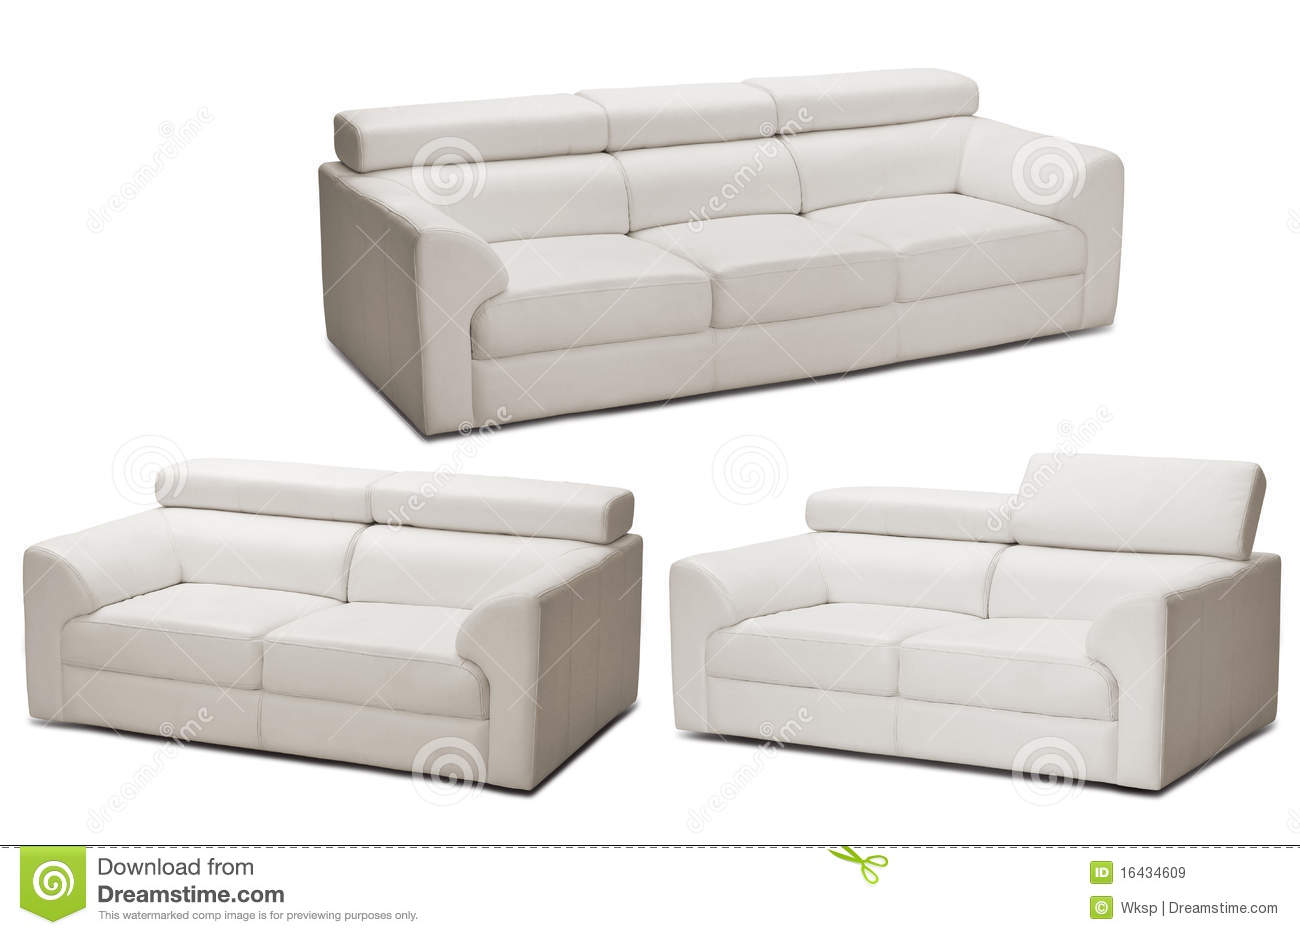 Sofa Set Images Free Download Sofas Stock Image Image Of Leather Settee Hall Simplicity